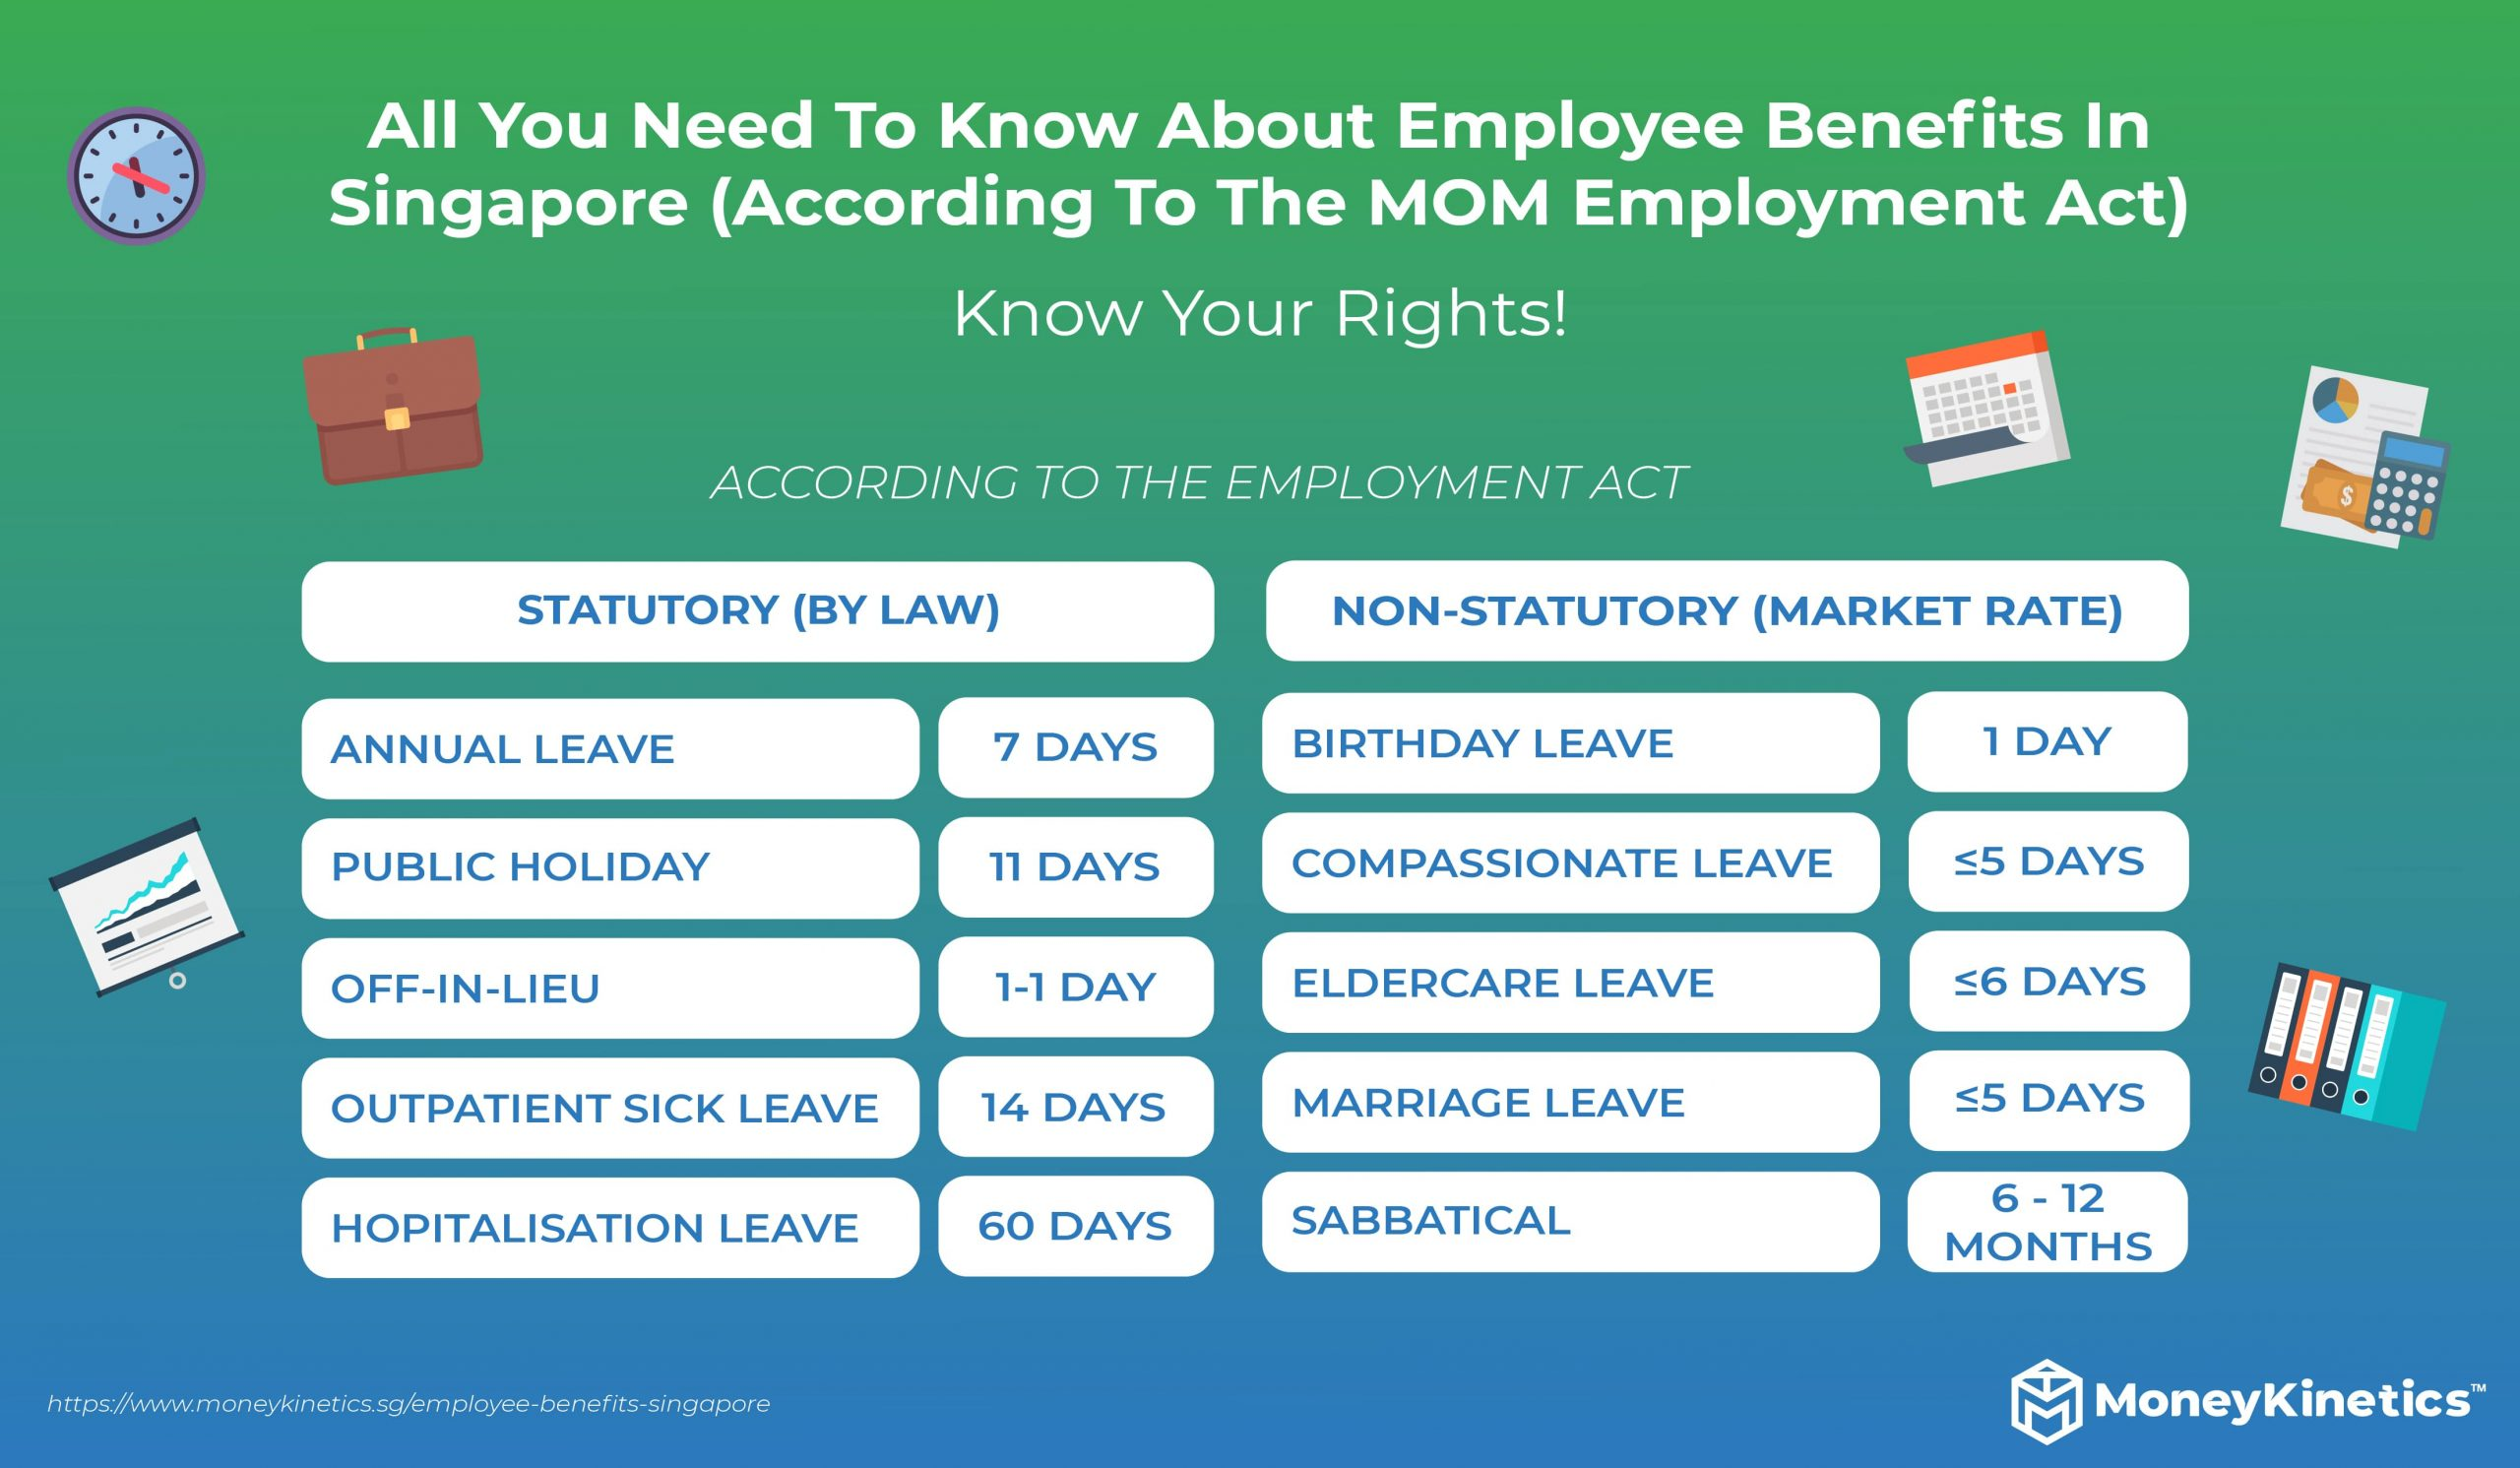 All You Need To Know About Employee Benefits In Singapore: Annual Leave, Off-in-lieu, Hospitalisation Leave, etc.